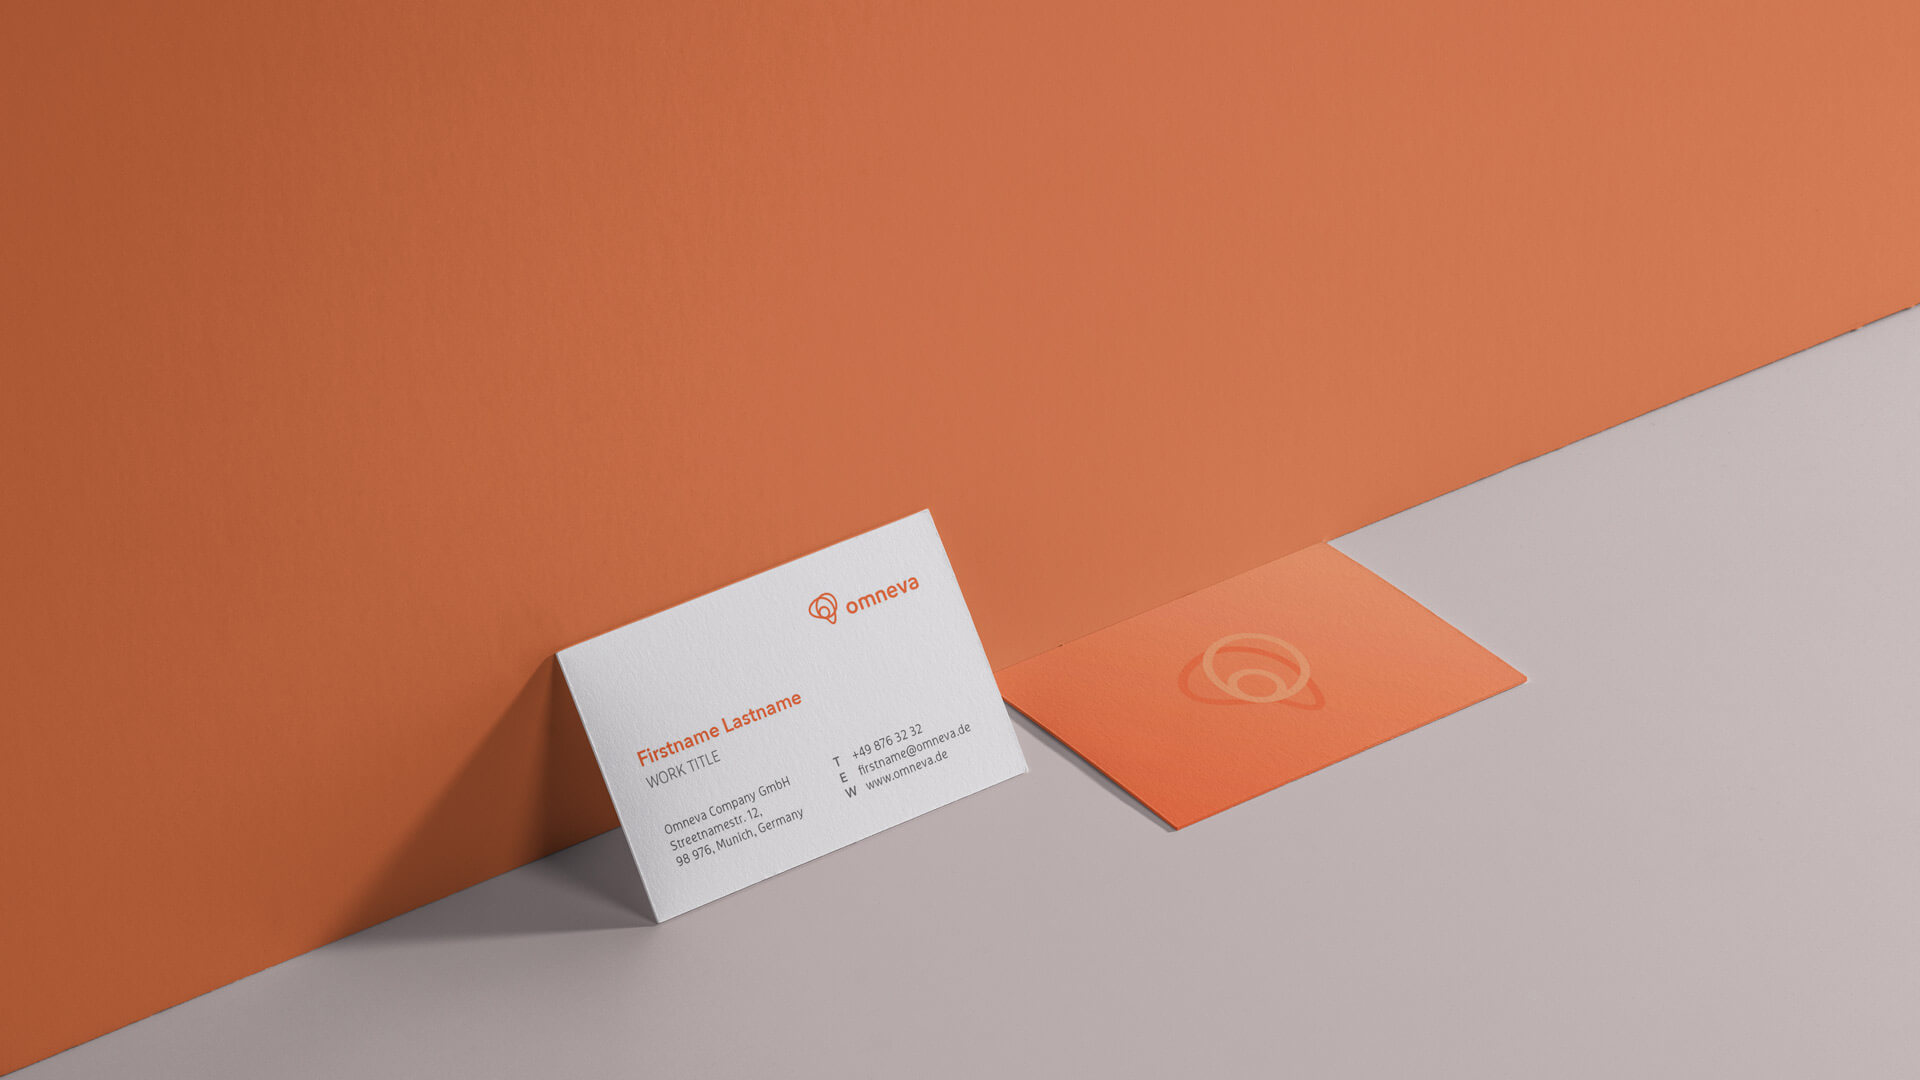 Mockup with Business Cards for omneva in an orange Setting